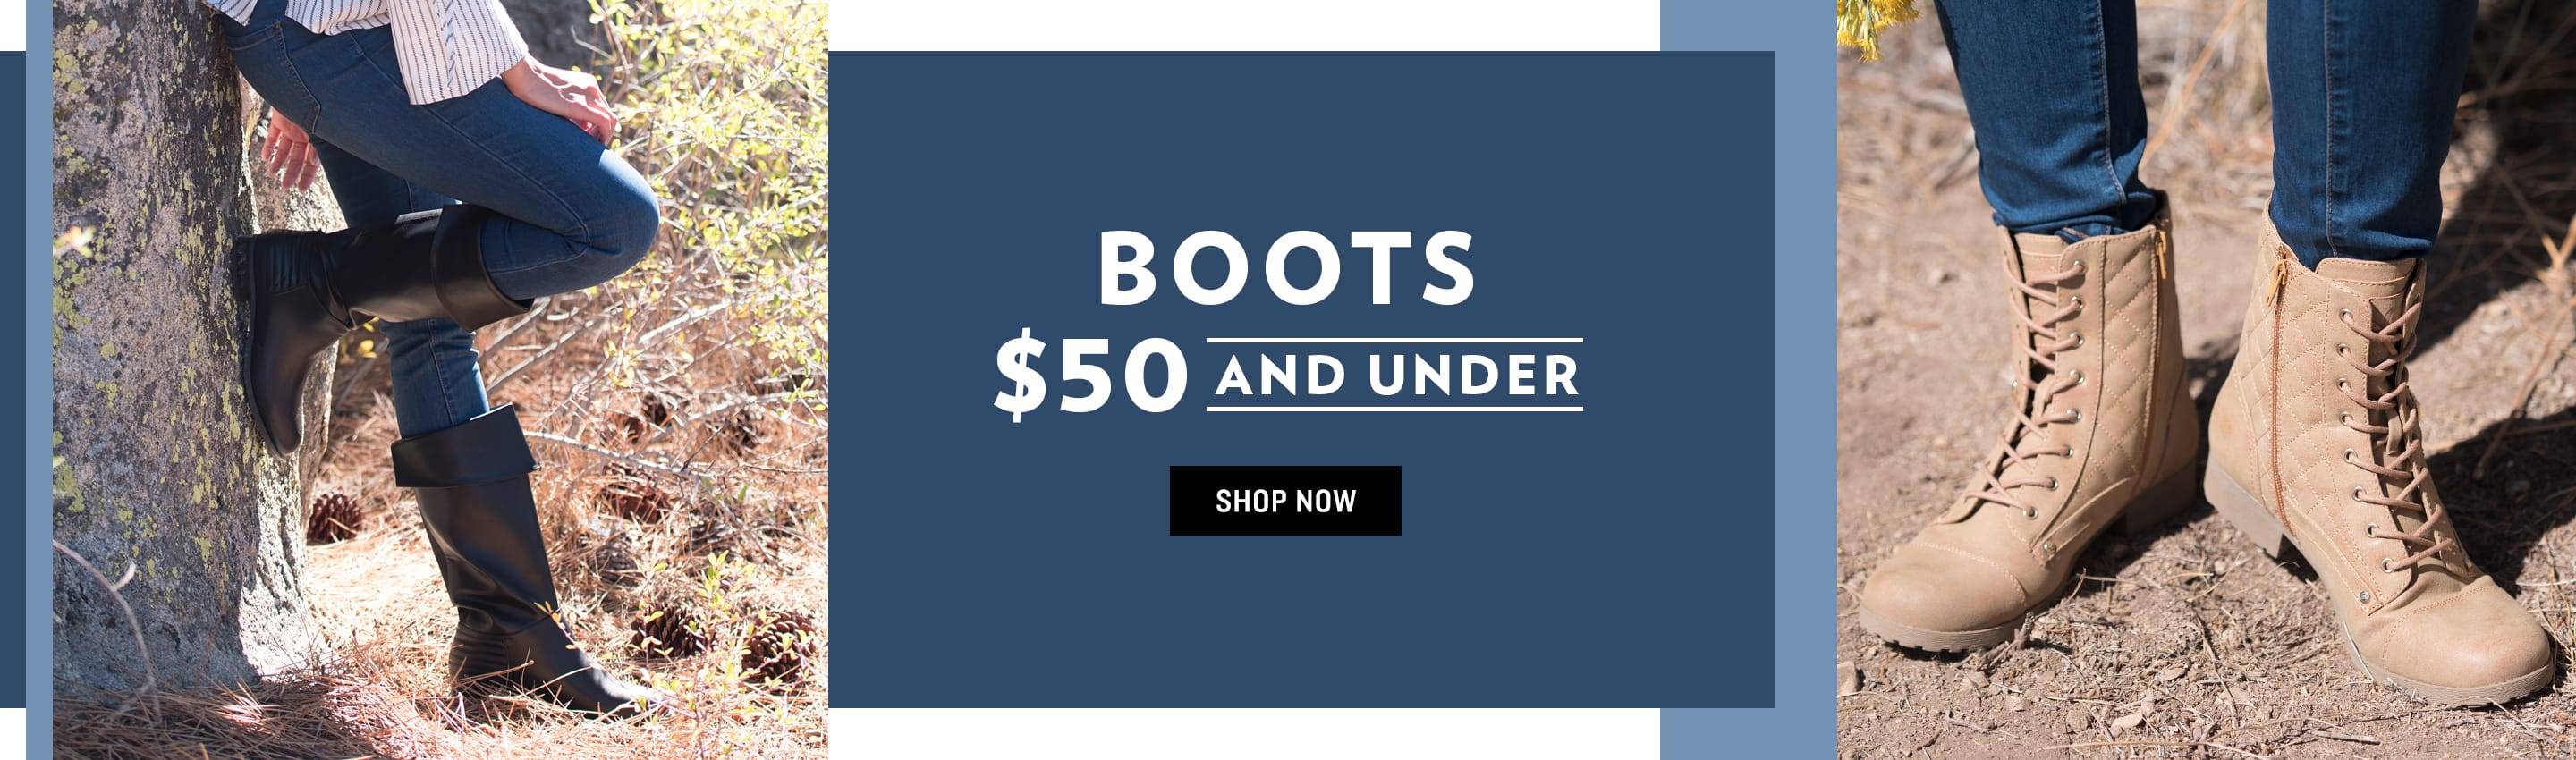 $50 and Under Boots